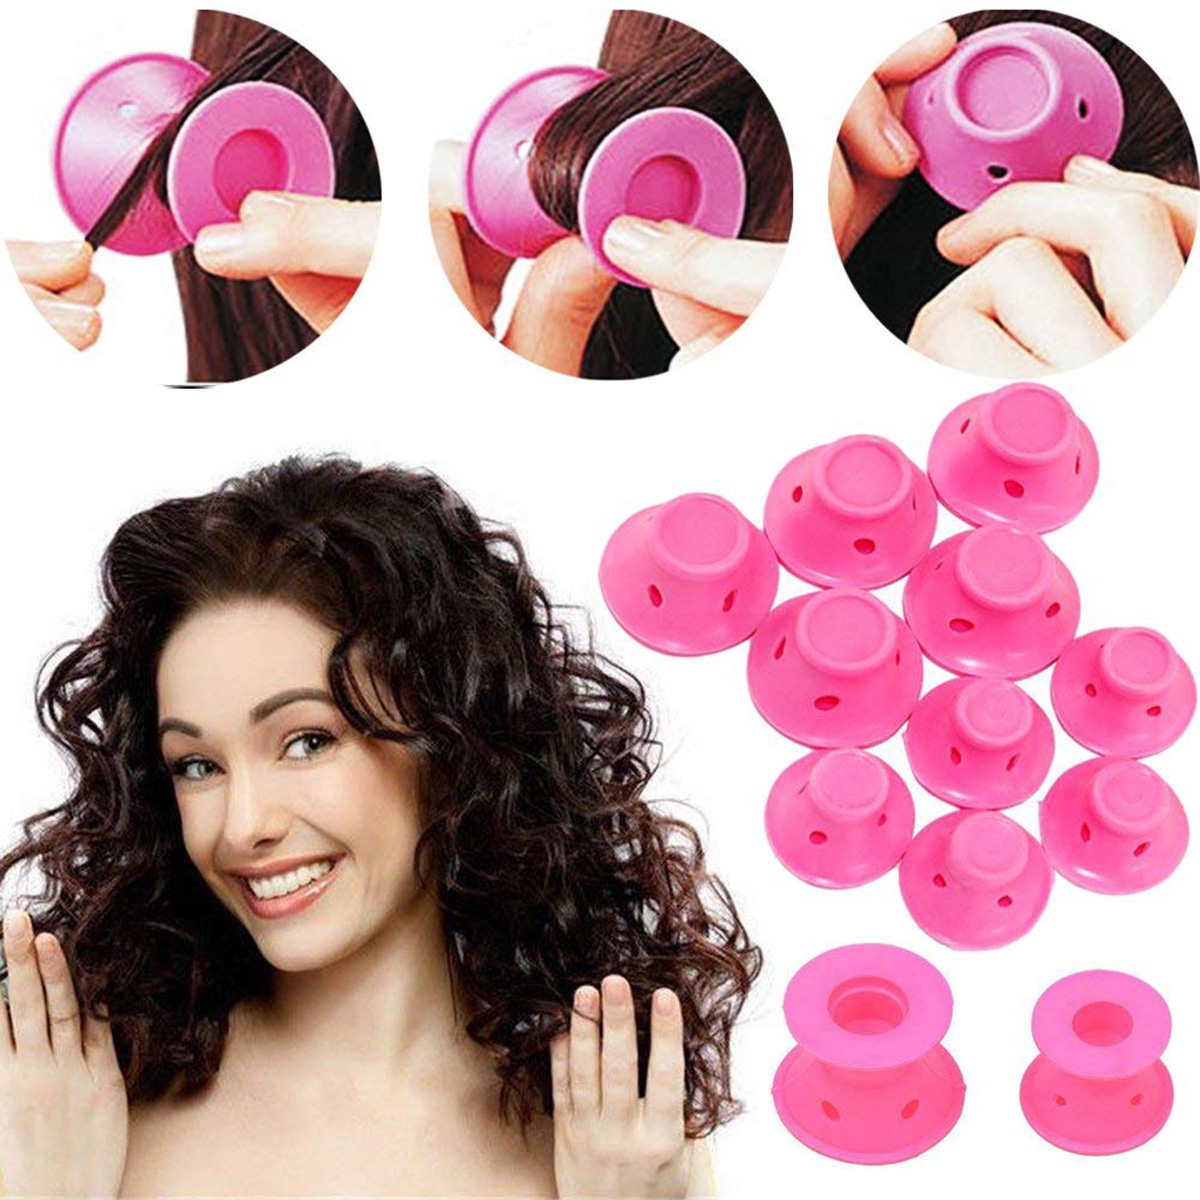 10Pcs Soft Magic Hair Rollers Hair Curlers No Heat Hair Styling Tools  Easy Twist Rollers Easy Curling Device10Pcs Soft Magic Hair Rollers Hair Curlers No Heat Hair Styling Tools  Easy Twist Rollers Easy Curling Device